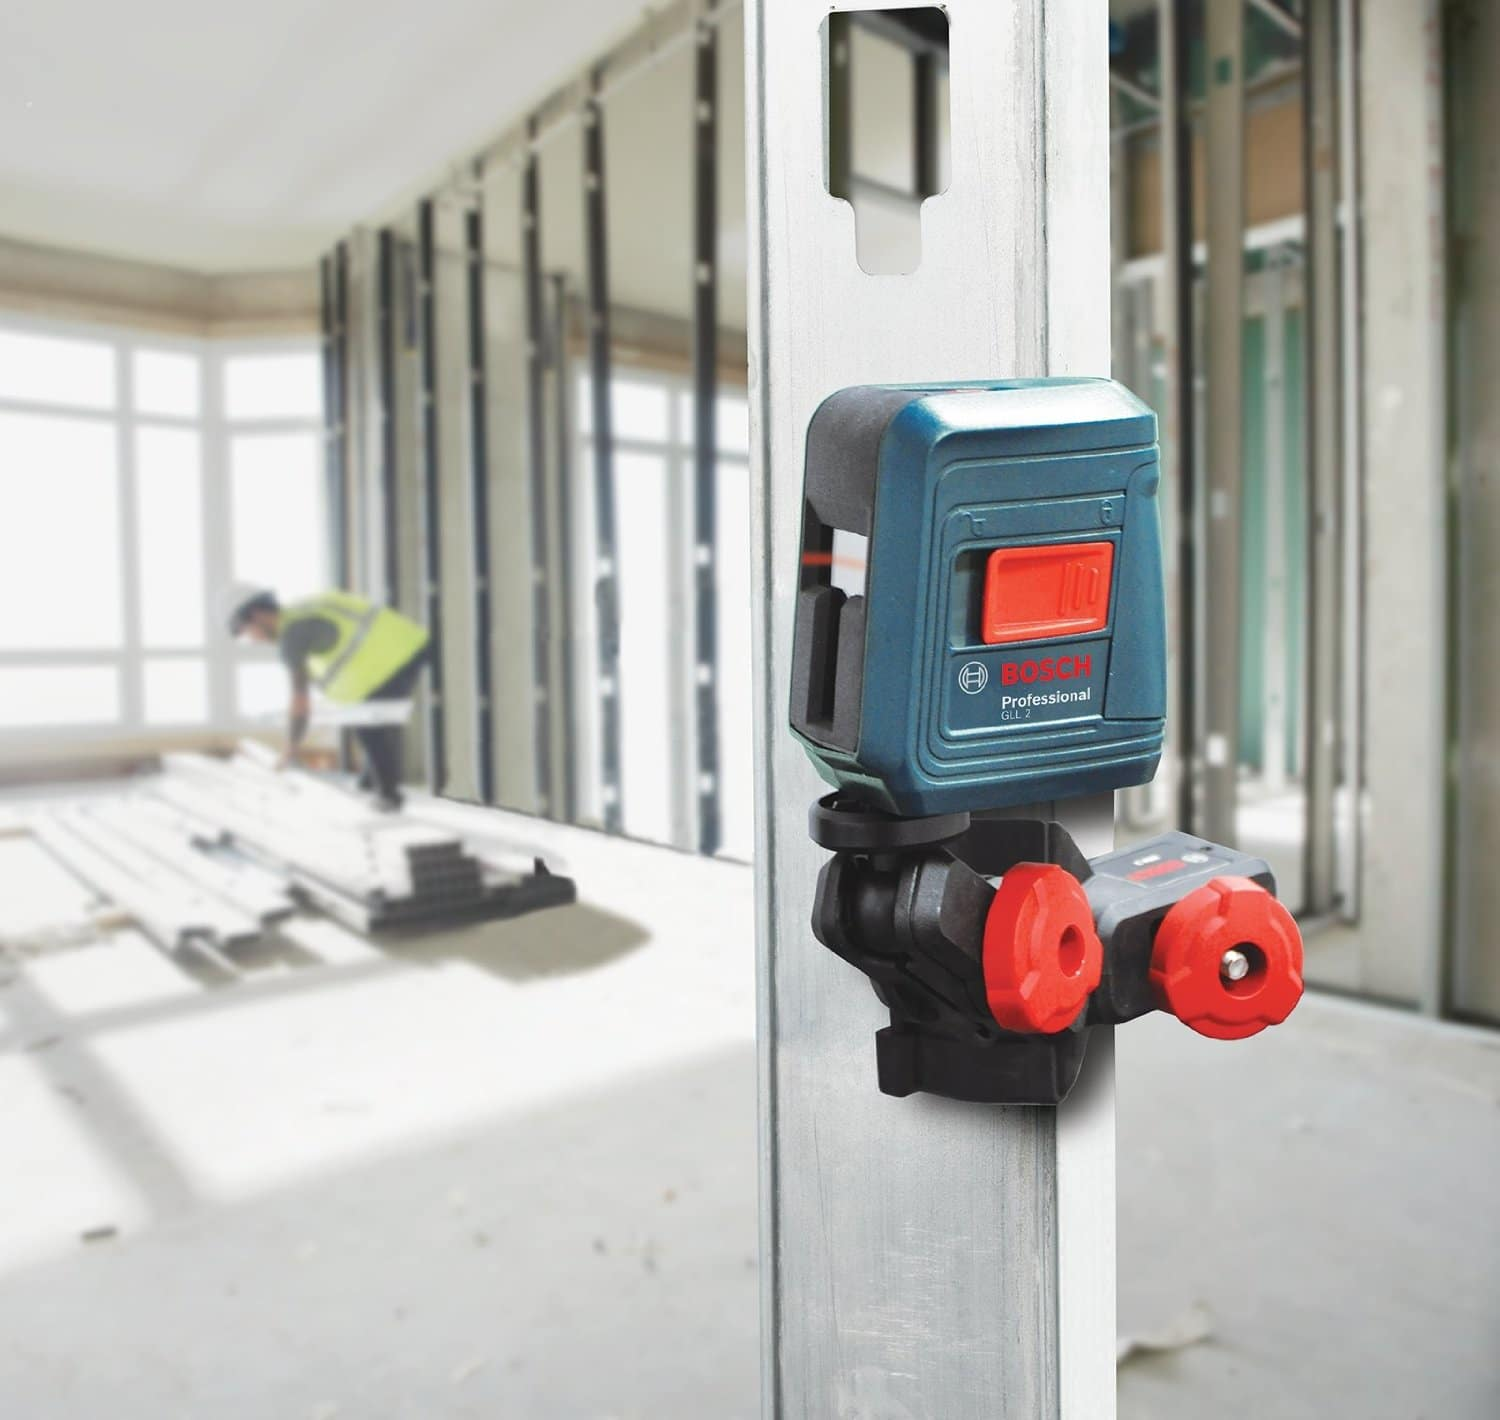 How to Use a Bosch Laser Level?